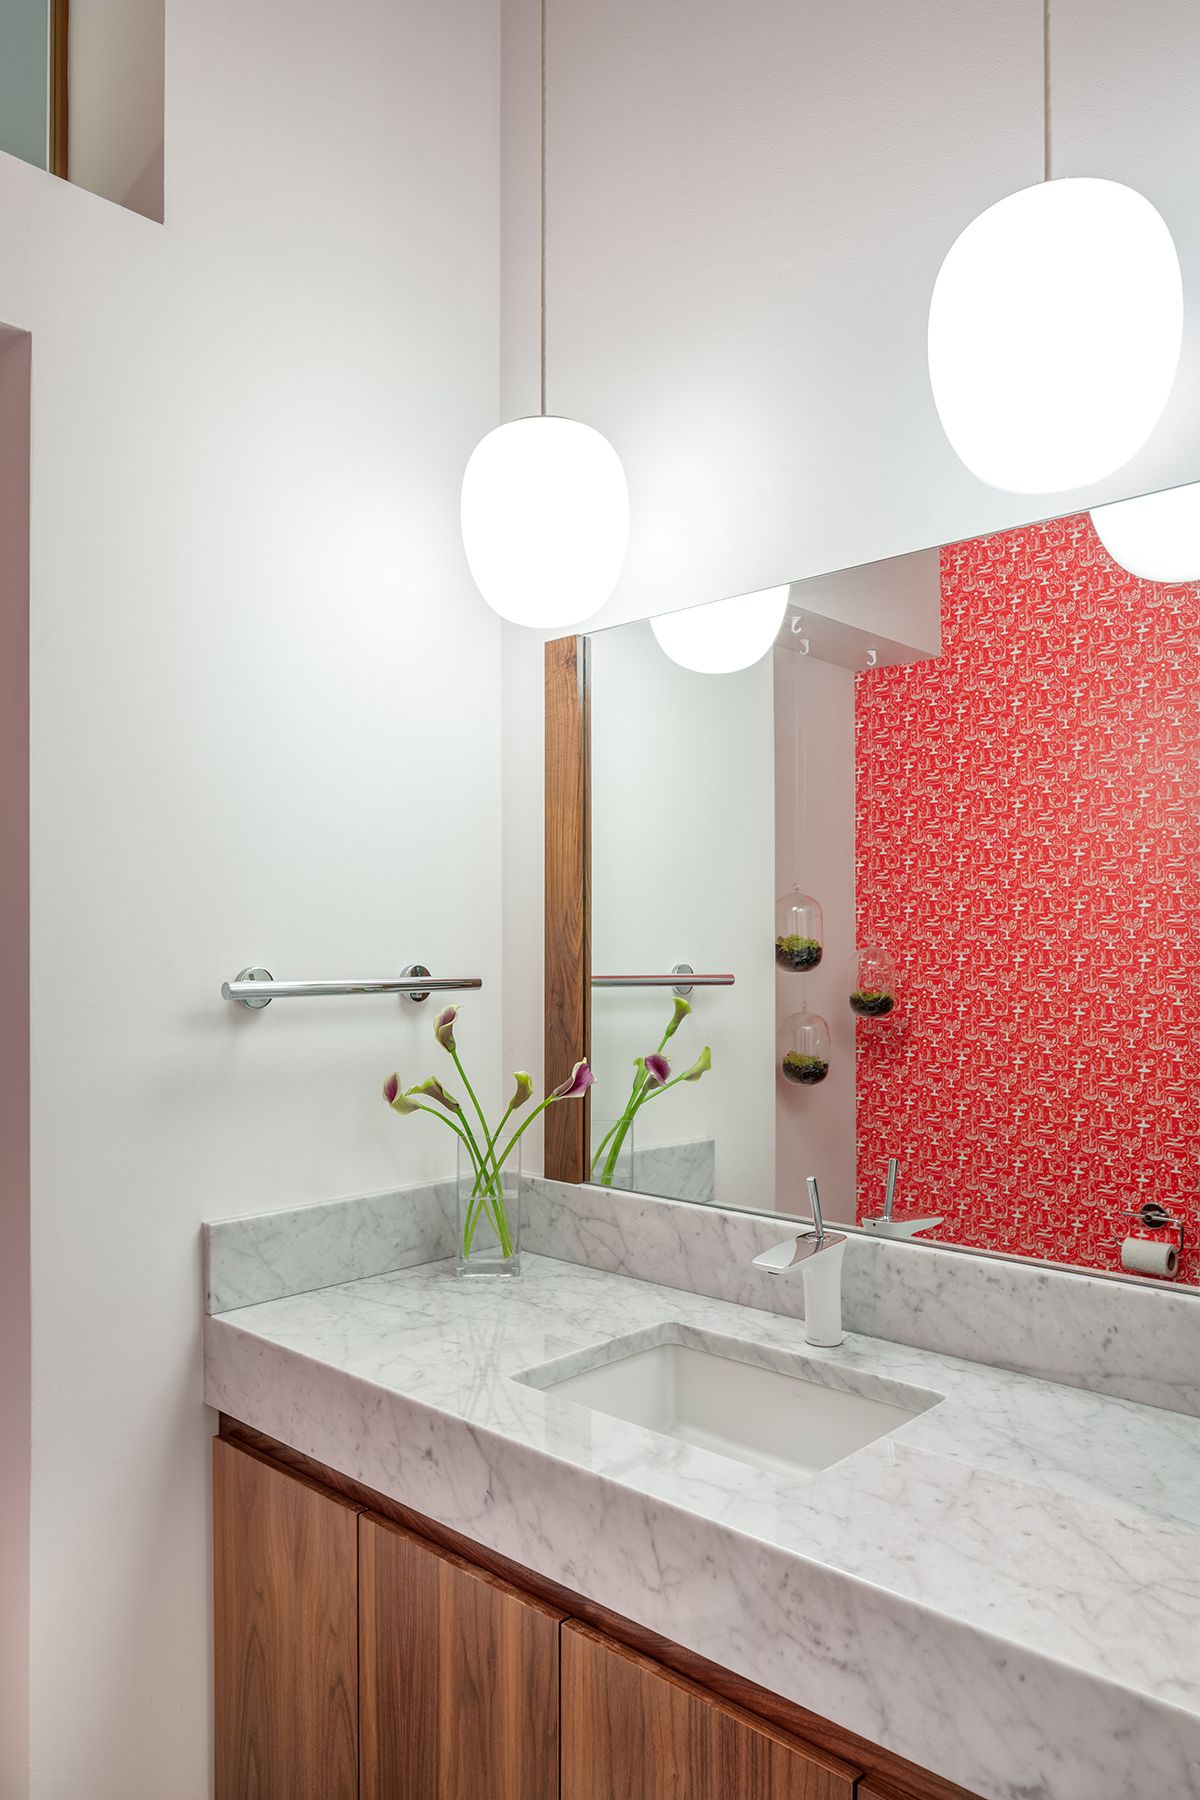 Modern powder room with wallpaper accent wall. Design